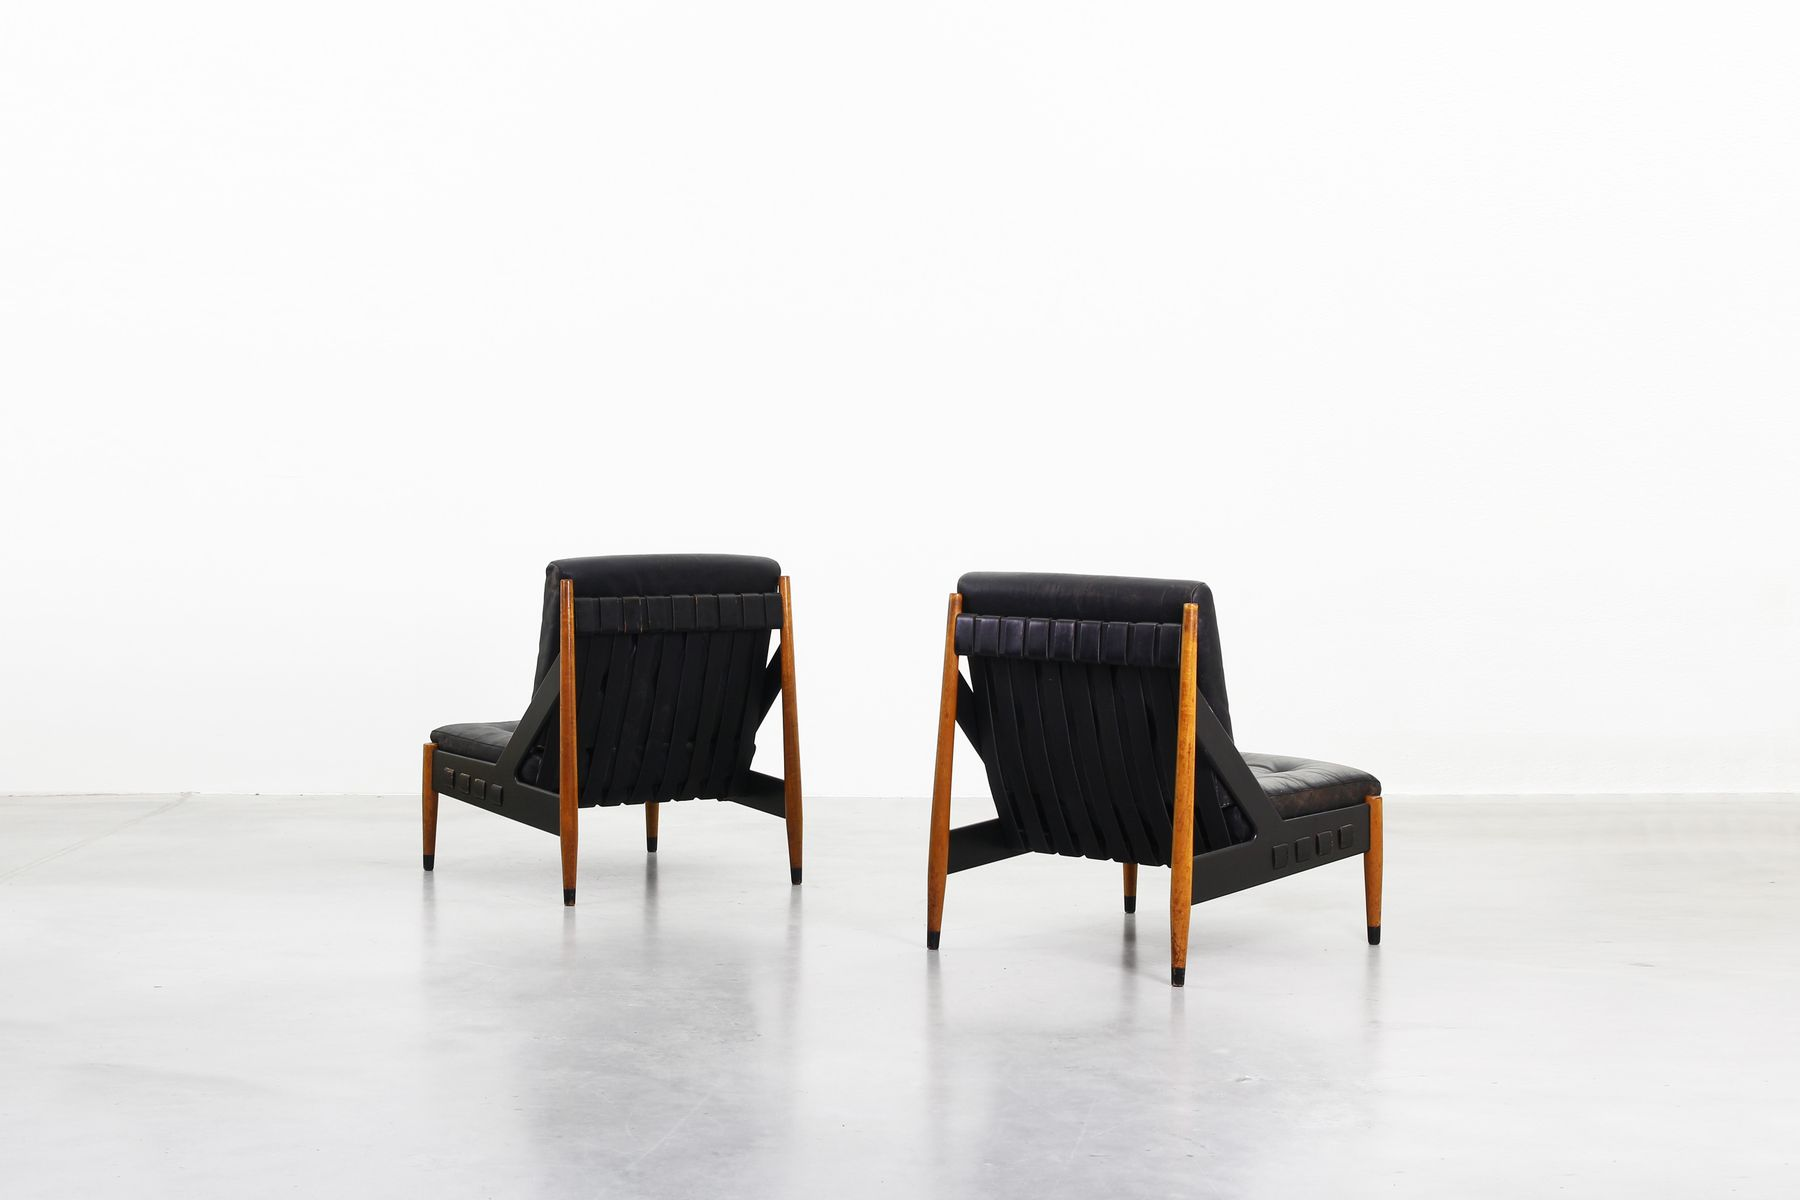 Lounge chairs by egon eiermann for wilde spieth set of for Lounge chair kopie